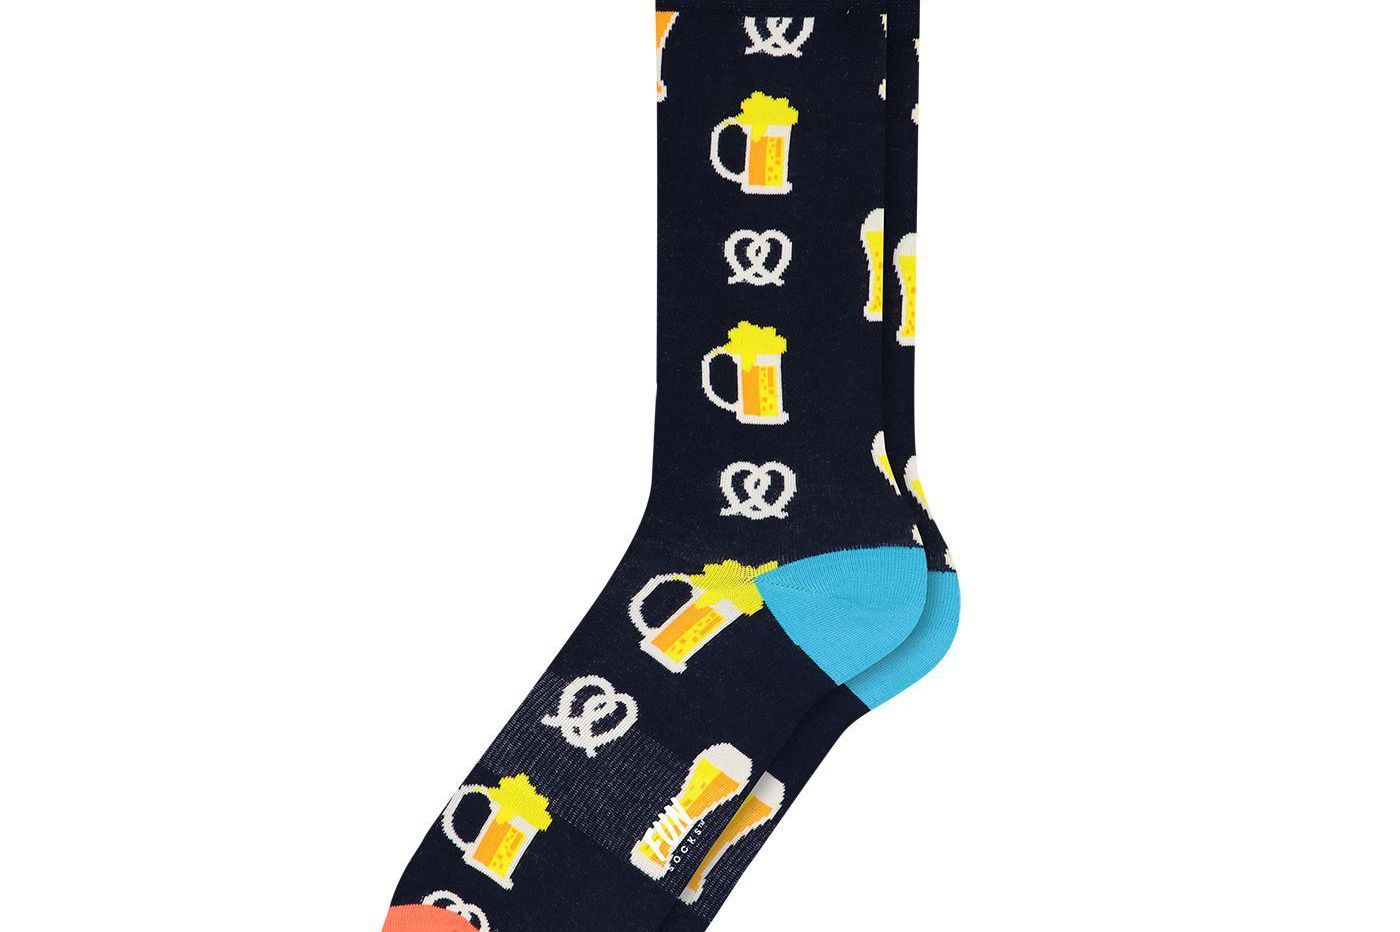 Father's Day quiz: What kind of socks should you buy your dad?